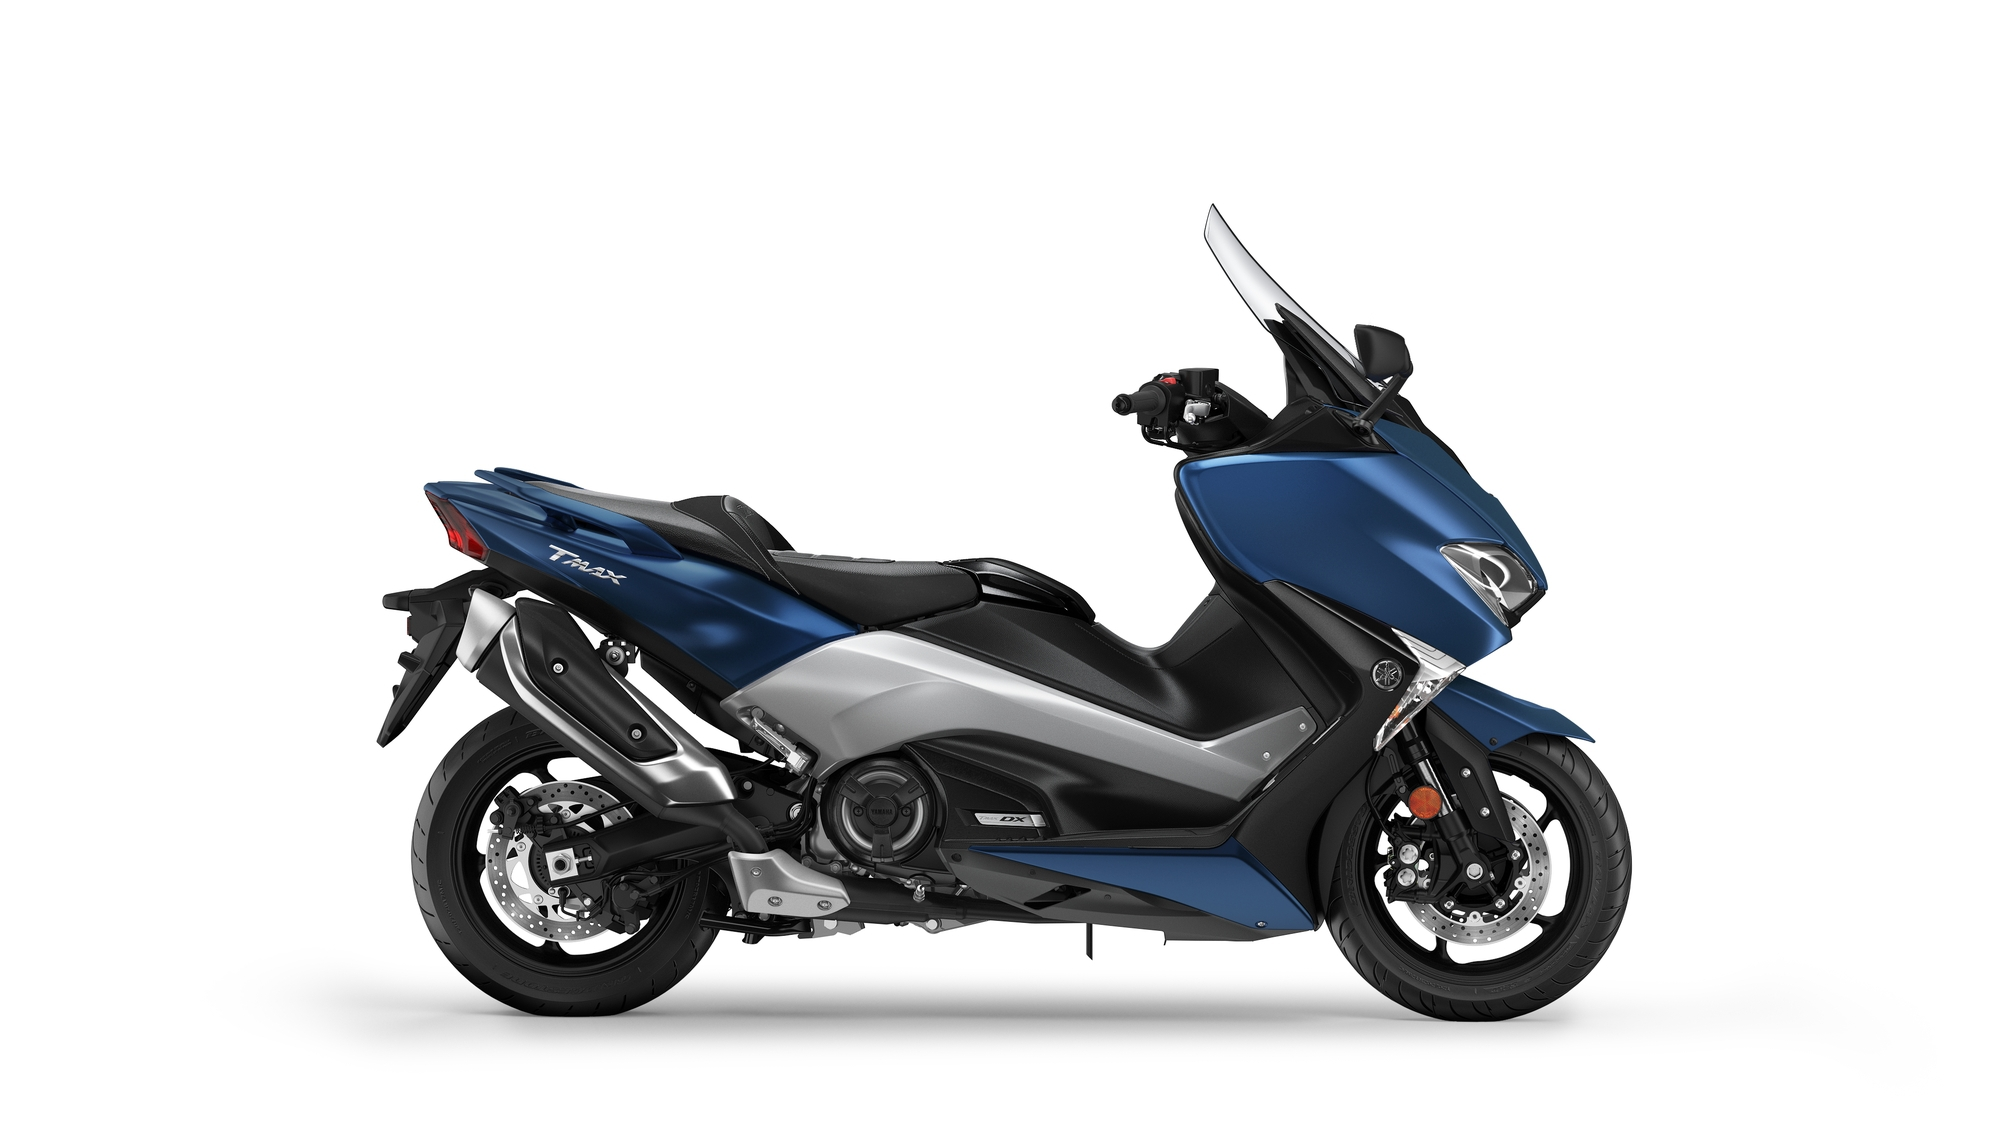 2017-Yamaha-TMAX-DX-EU-Phantom-Blue-Studio-002 (1)